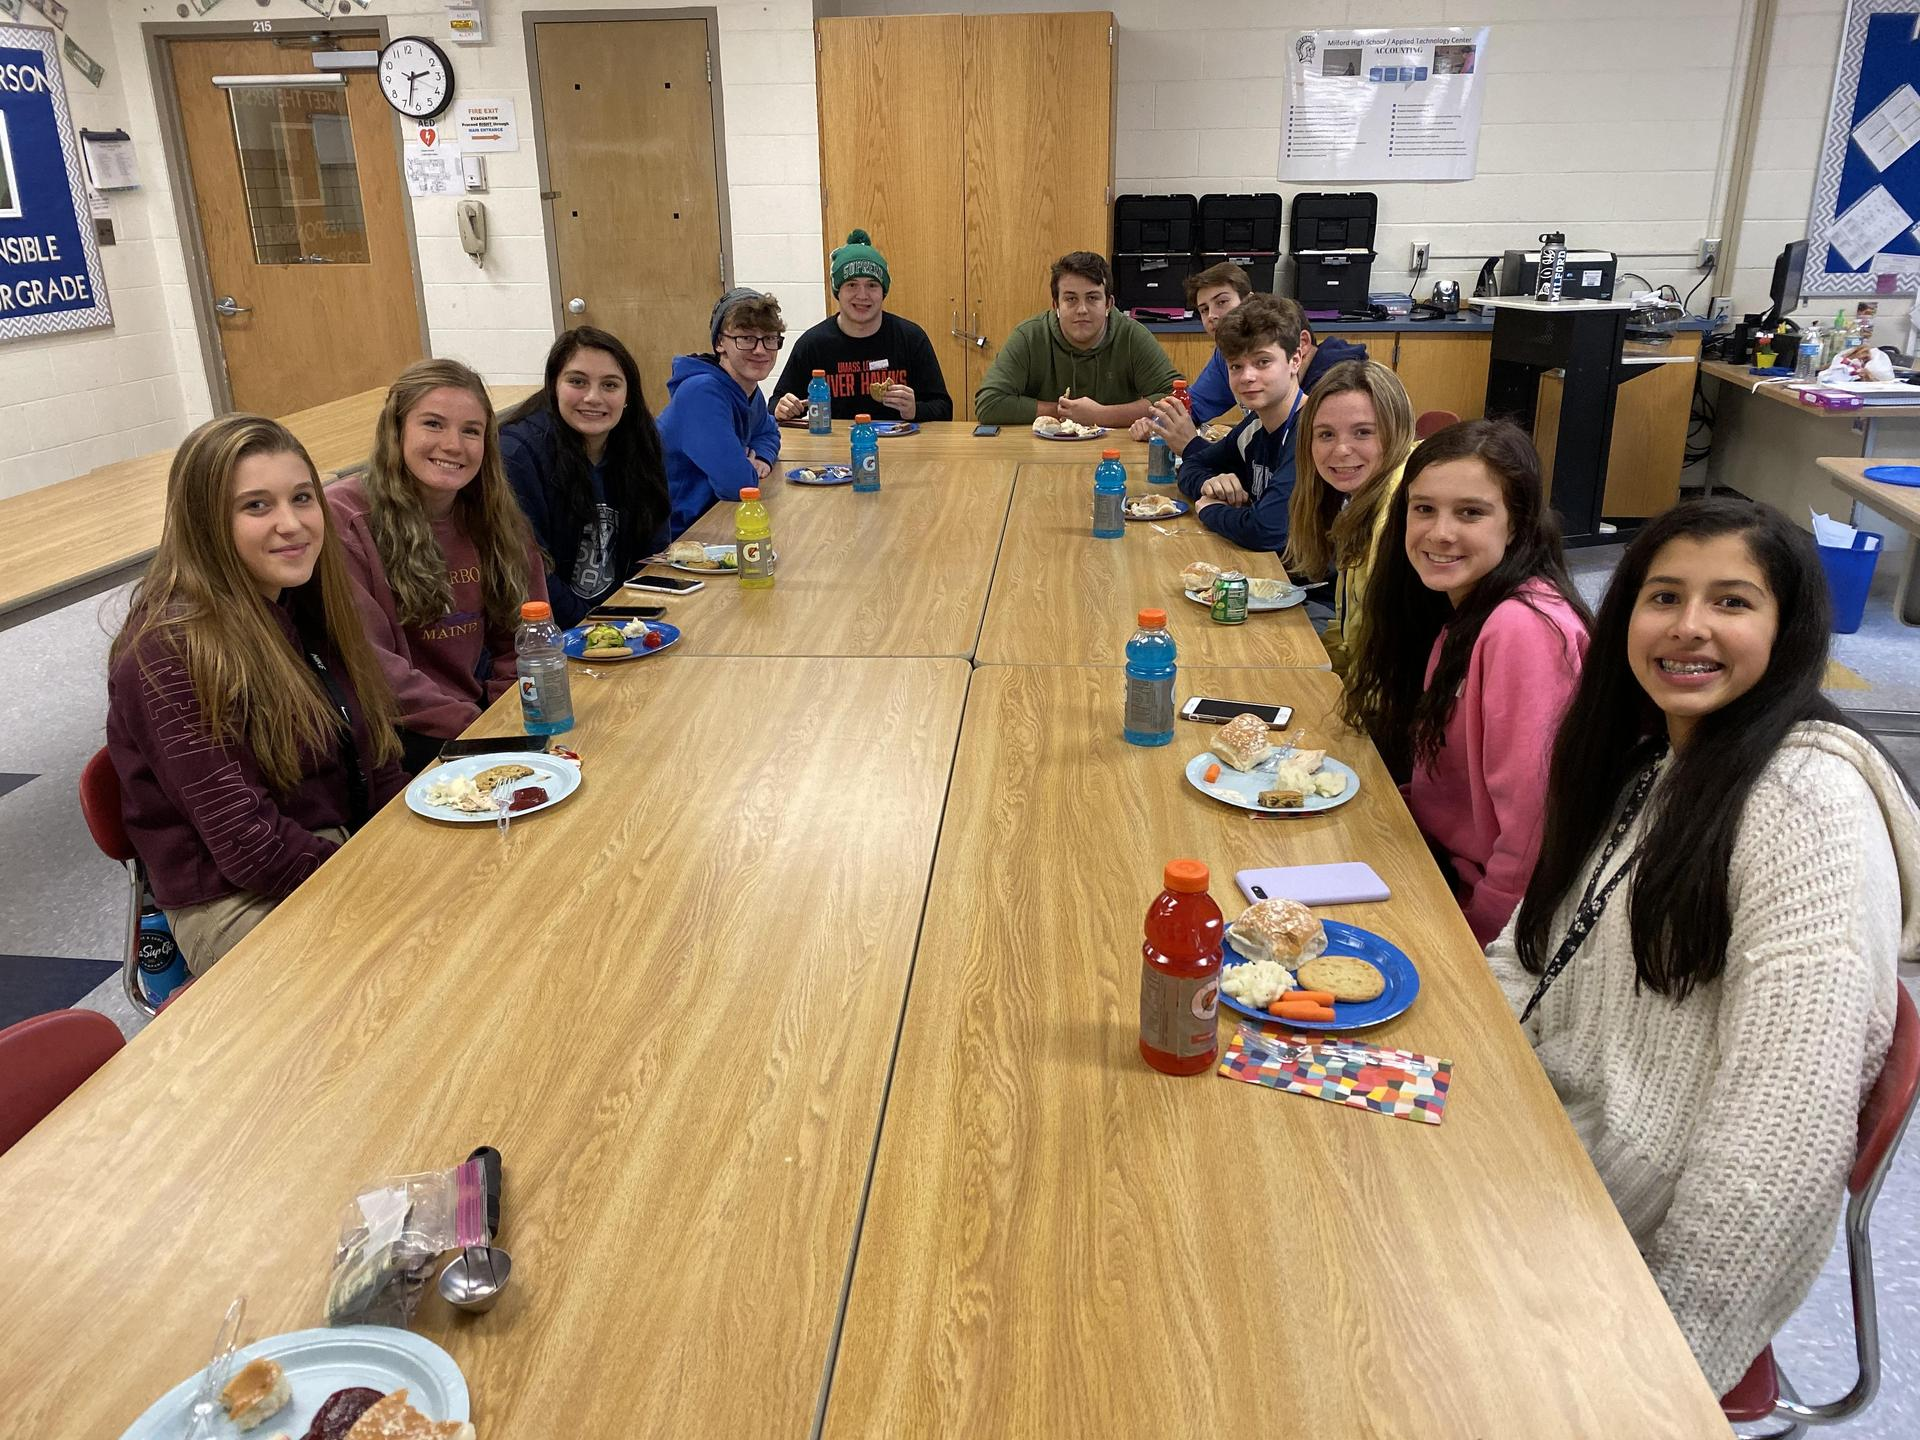 Students eating meal